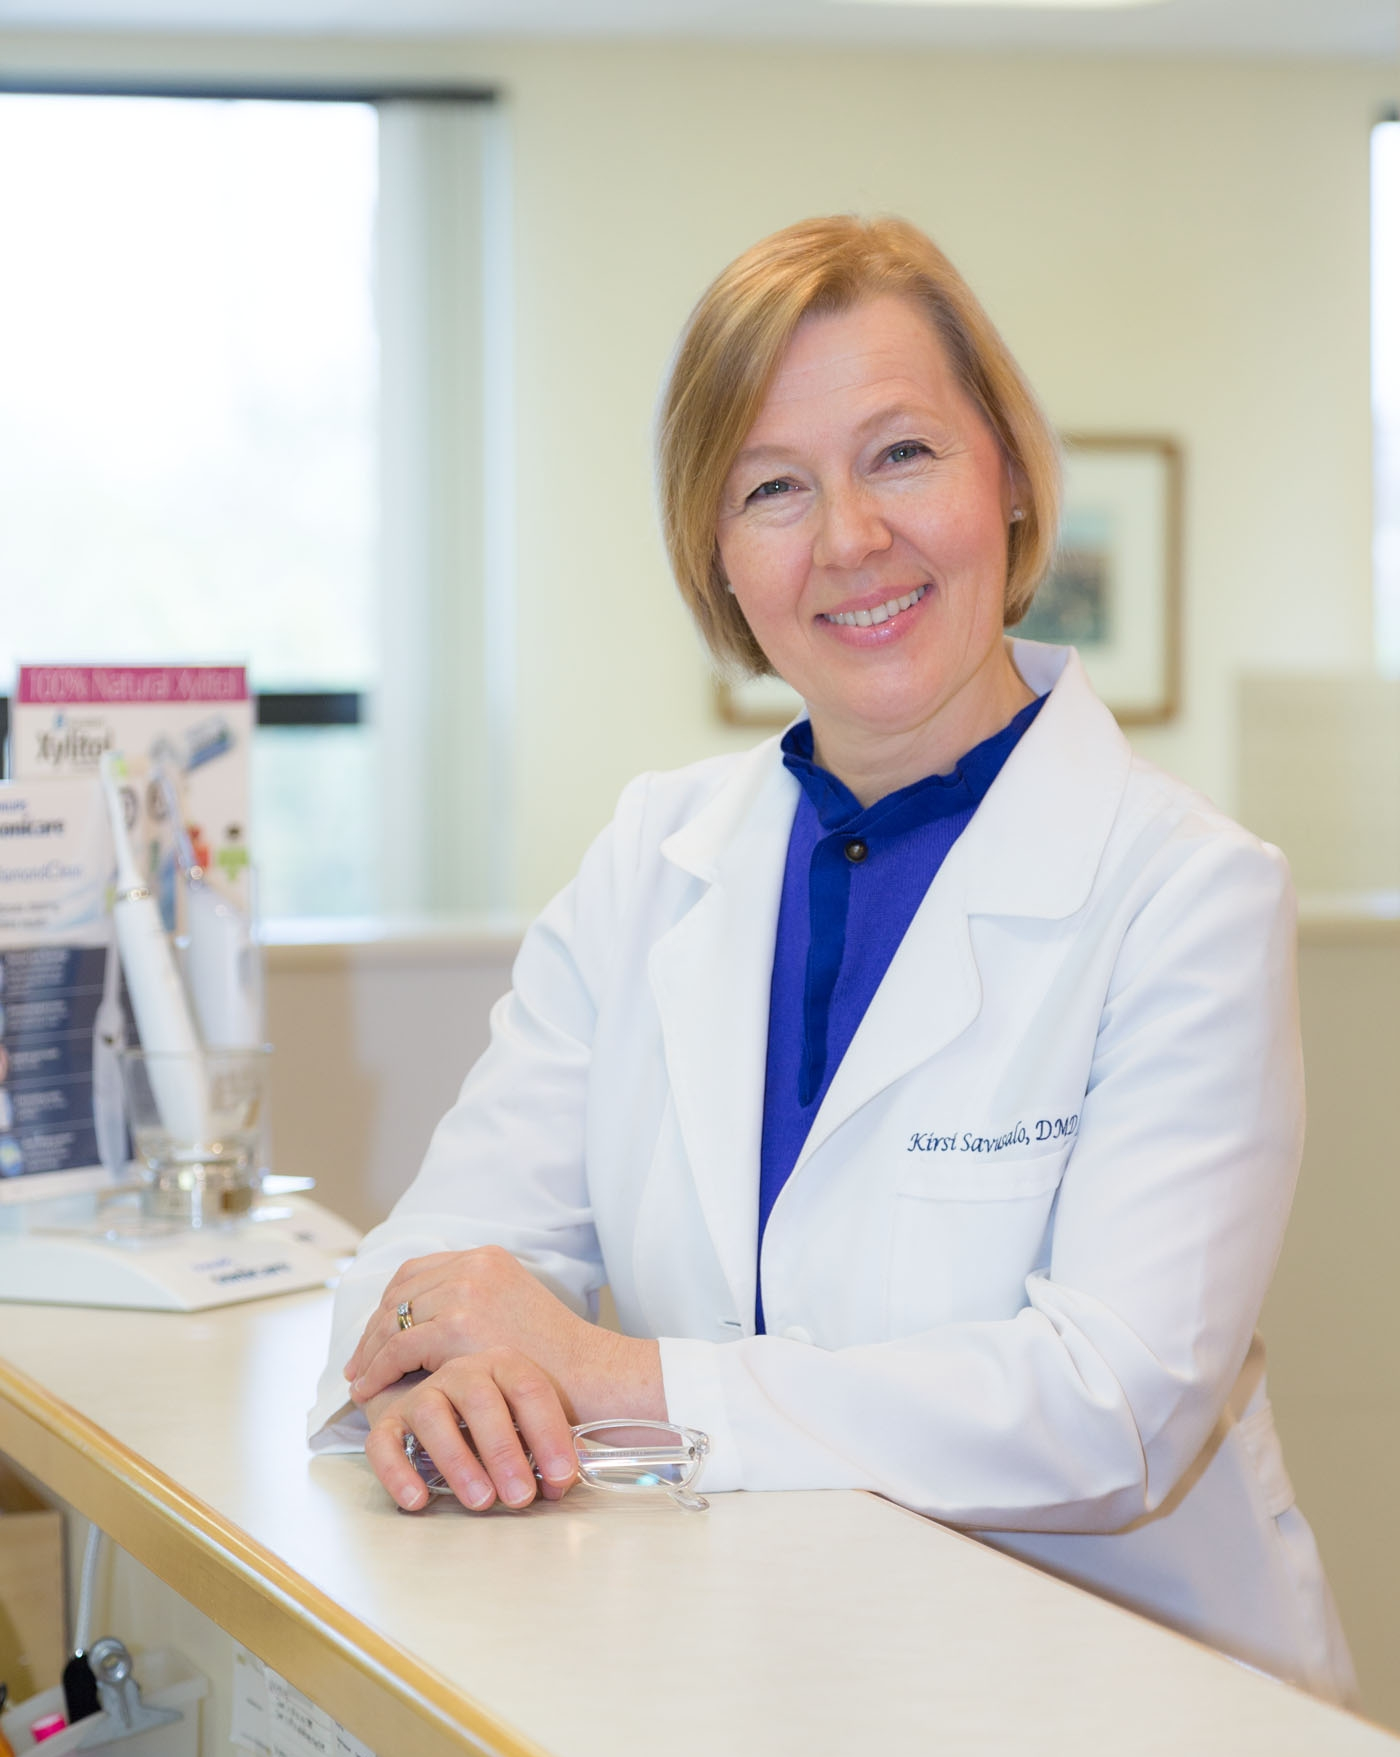 Dr. Kirsi Savusalo was named as a Top Dentist by Boston Magazine for 2017, 2018 and 2019! -